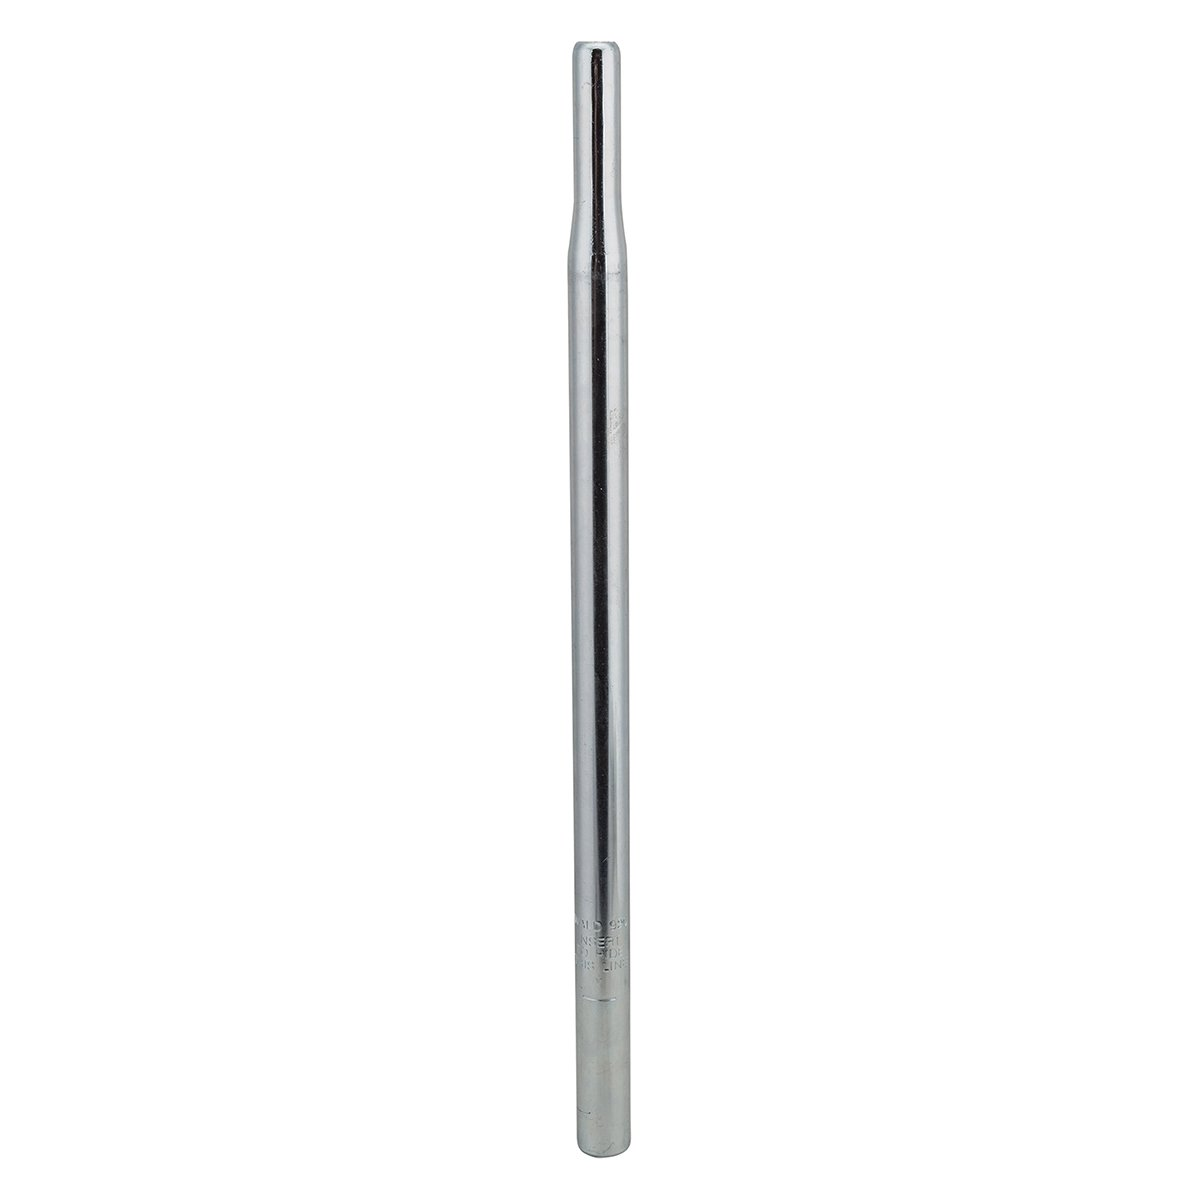 Wald Steel Pillar Seat Post -  920-15 - 13/16 x 15 with 5/8 Top by Wald